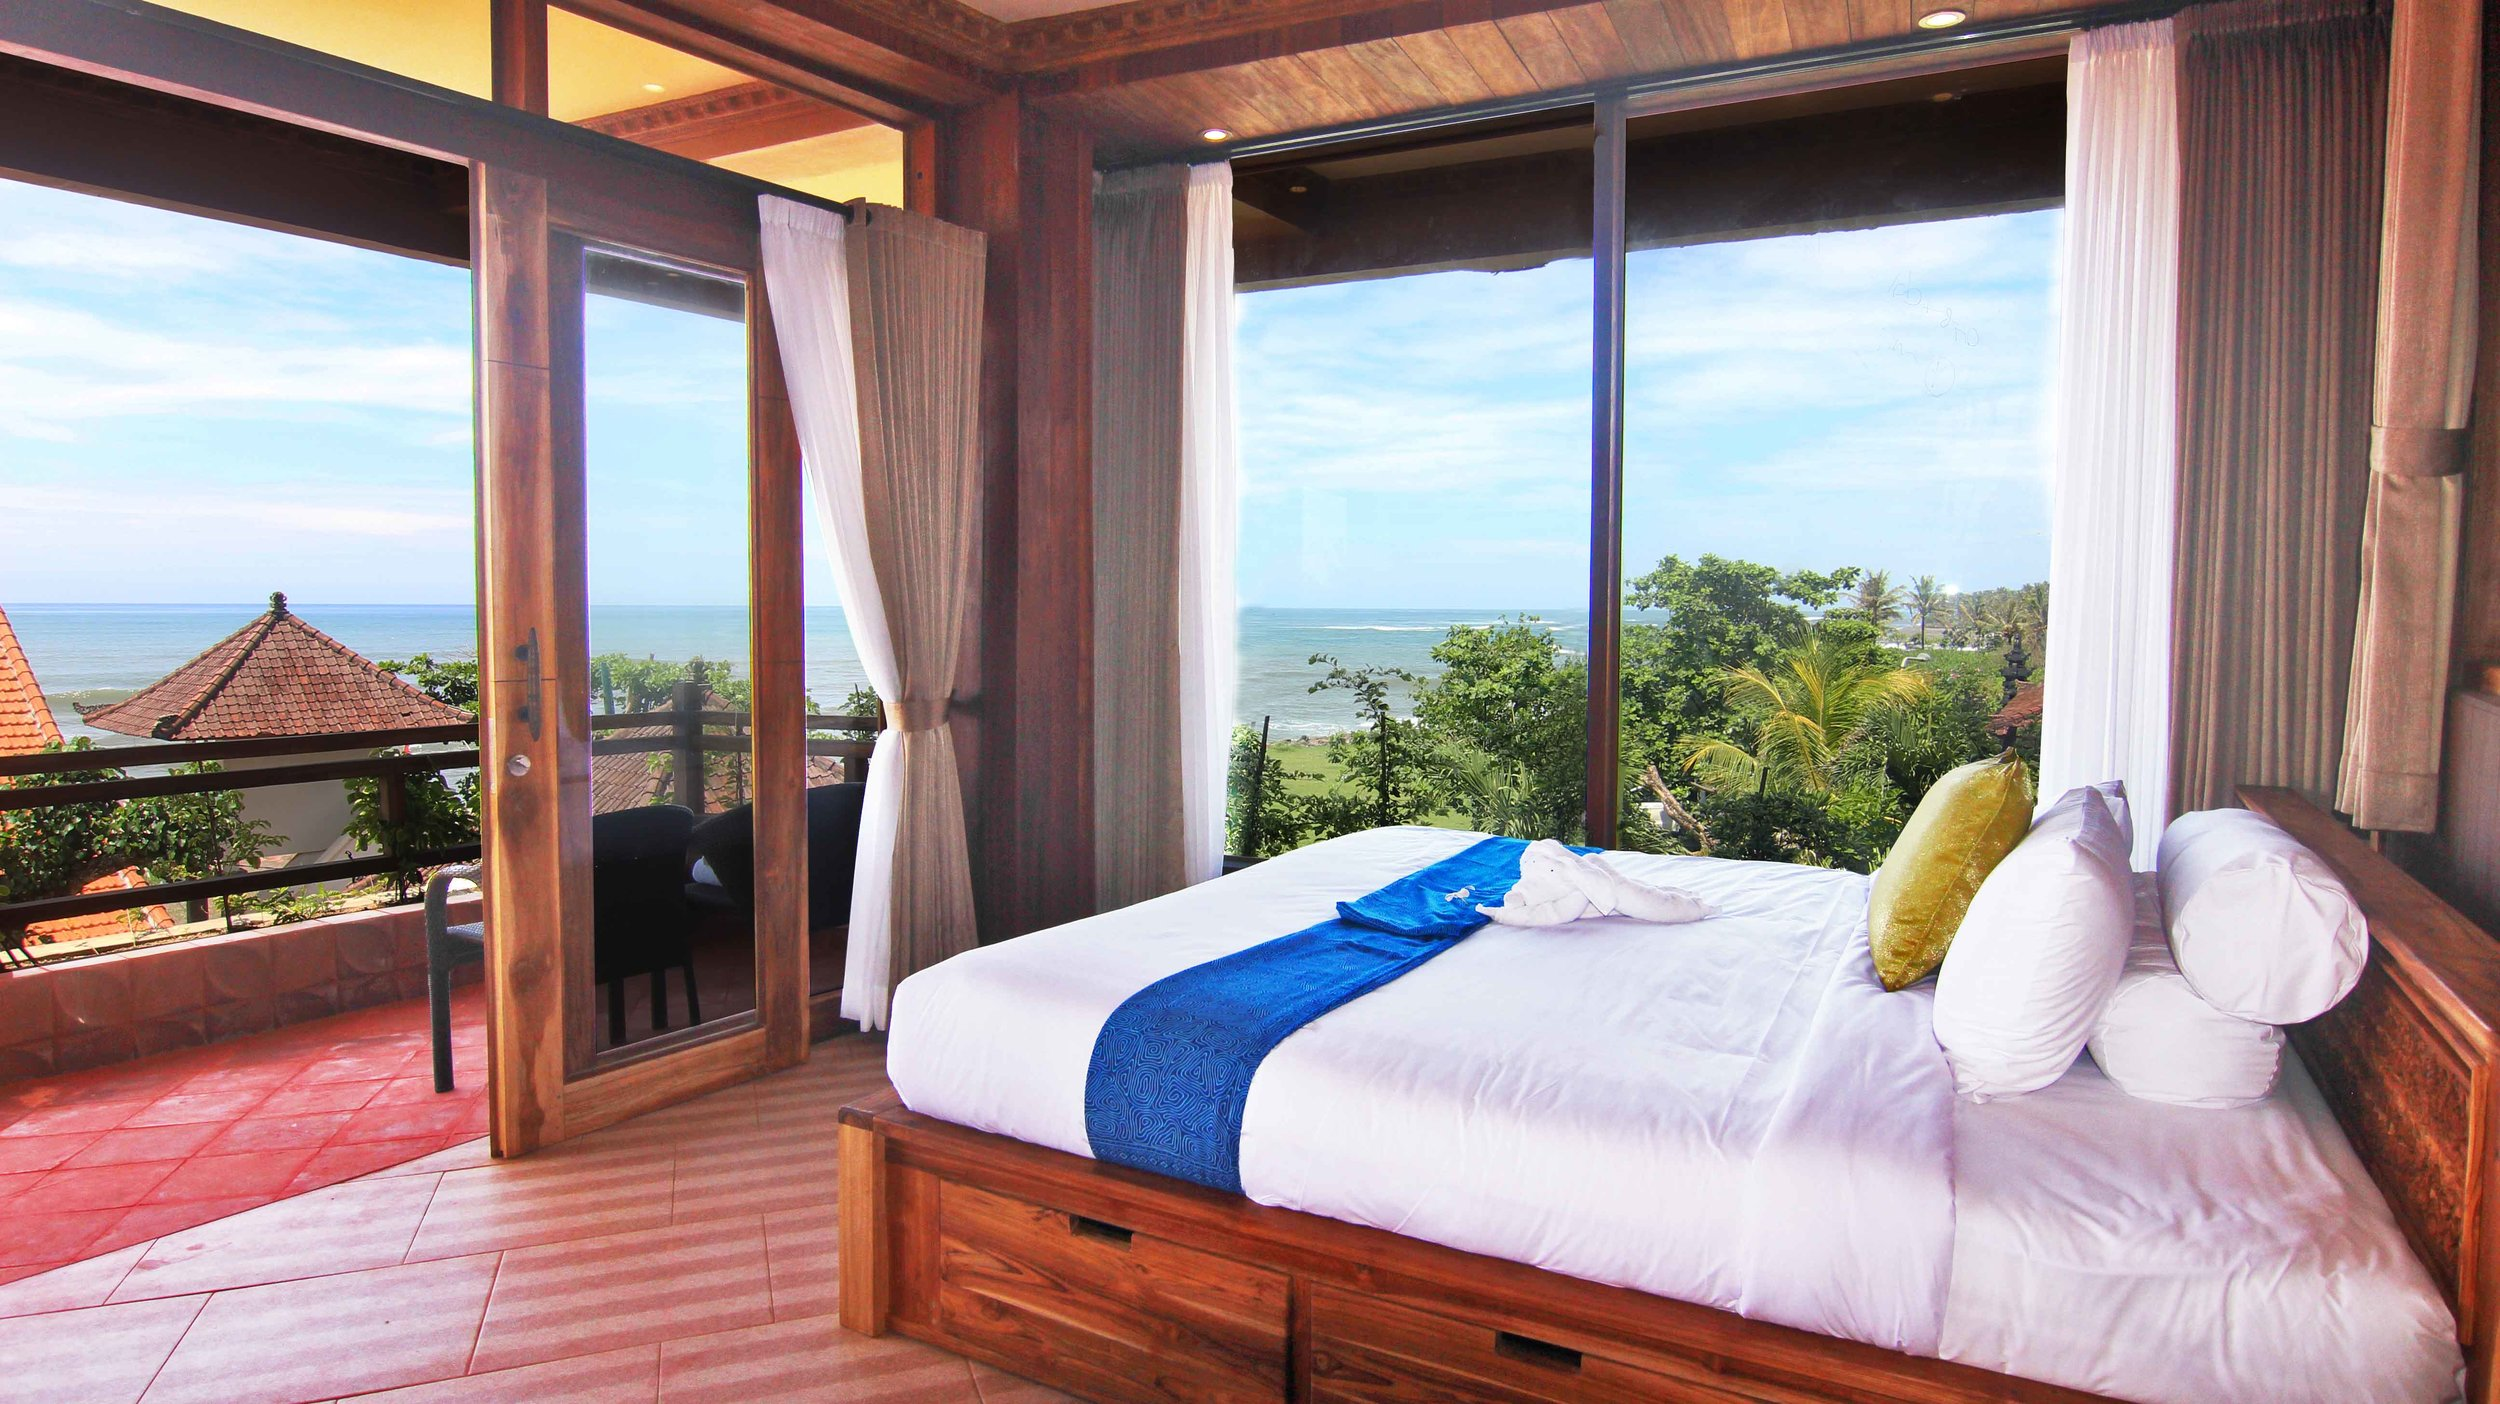 room-cheap-sale-room-discount-hot-deal-cheap-room---ocean-view-rooftop---nice-view.jpg